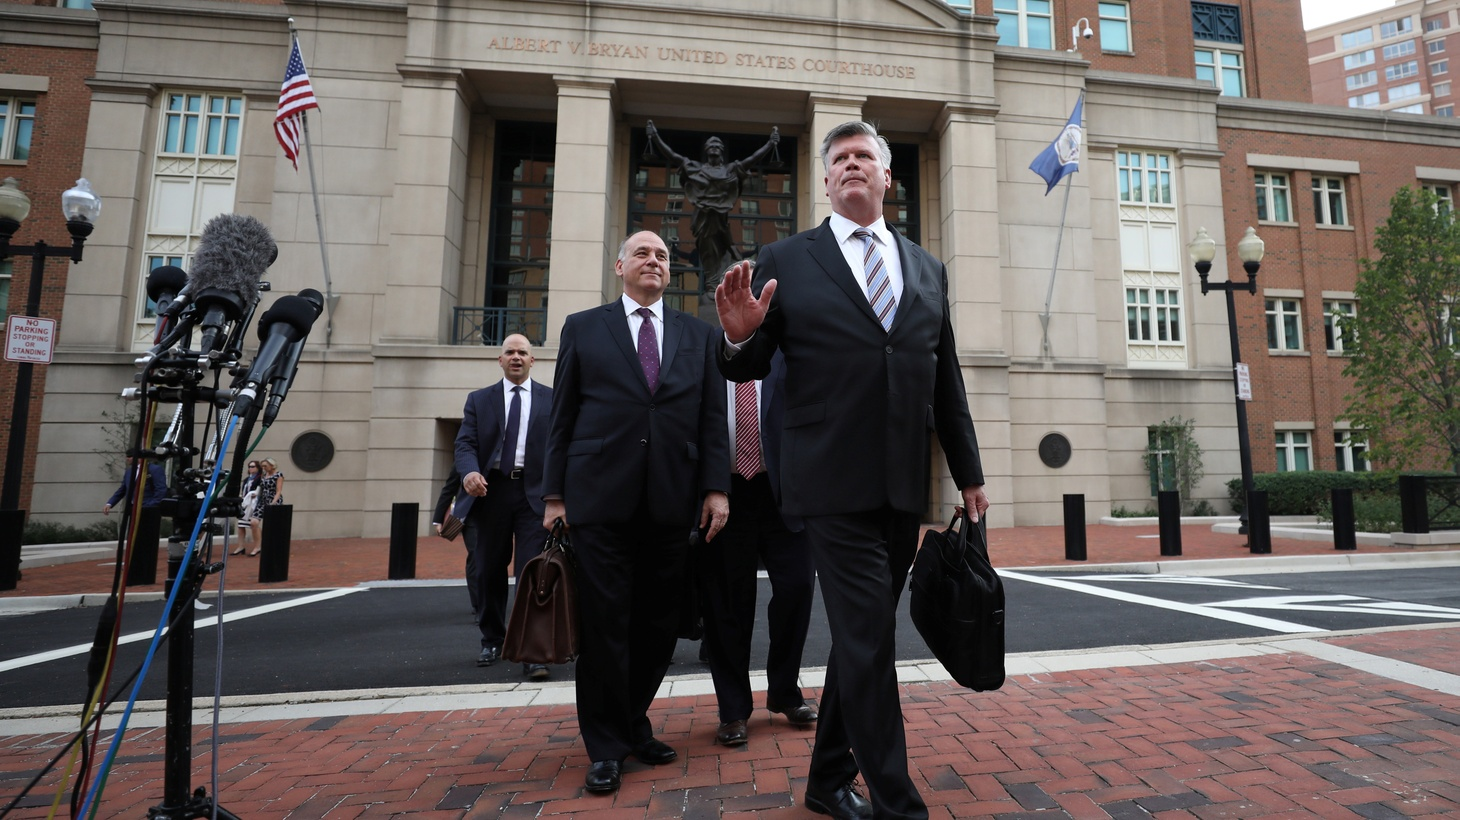 Closing arguments are finished and the jury in Paul Manafort's first trial begins deliberating